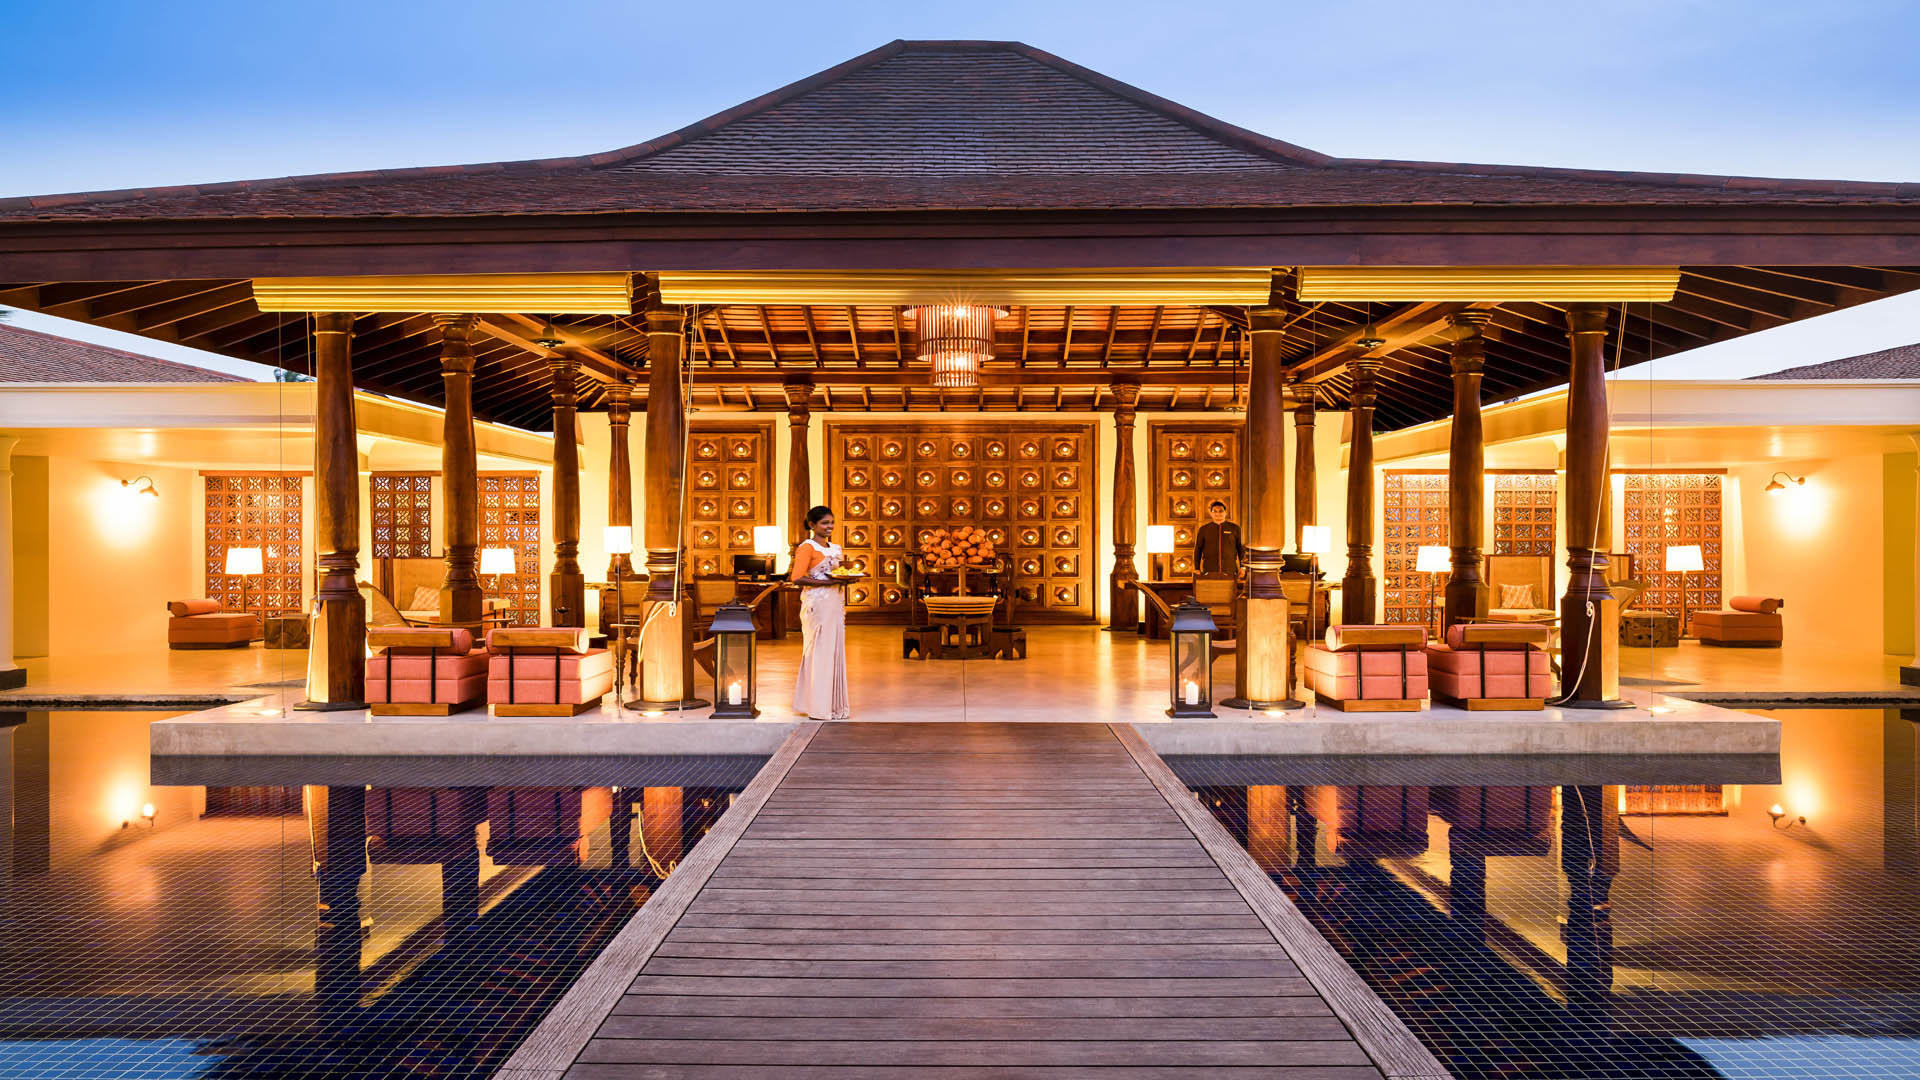 Anantara _ Resortlobby